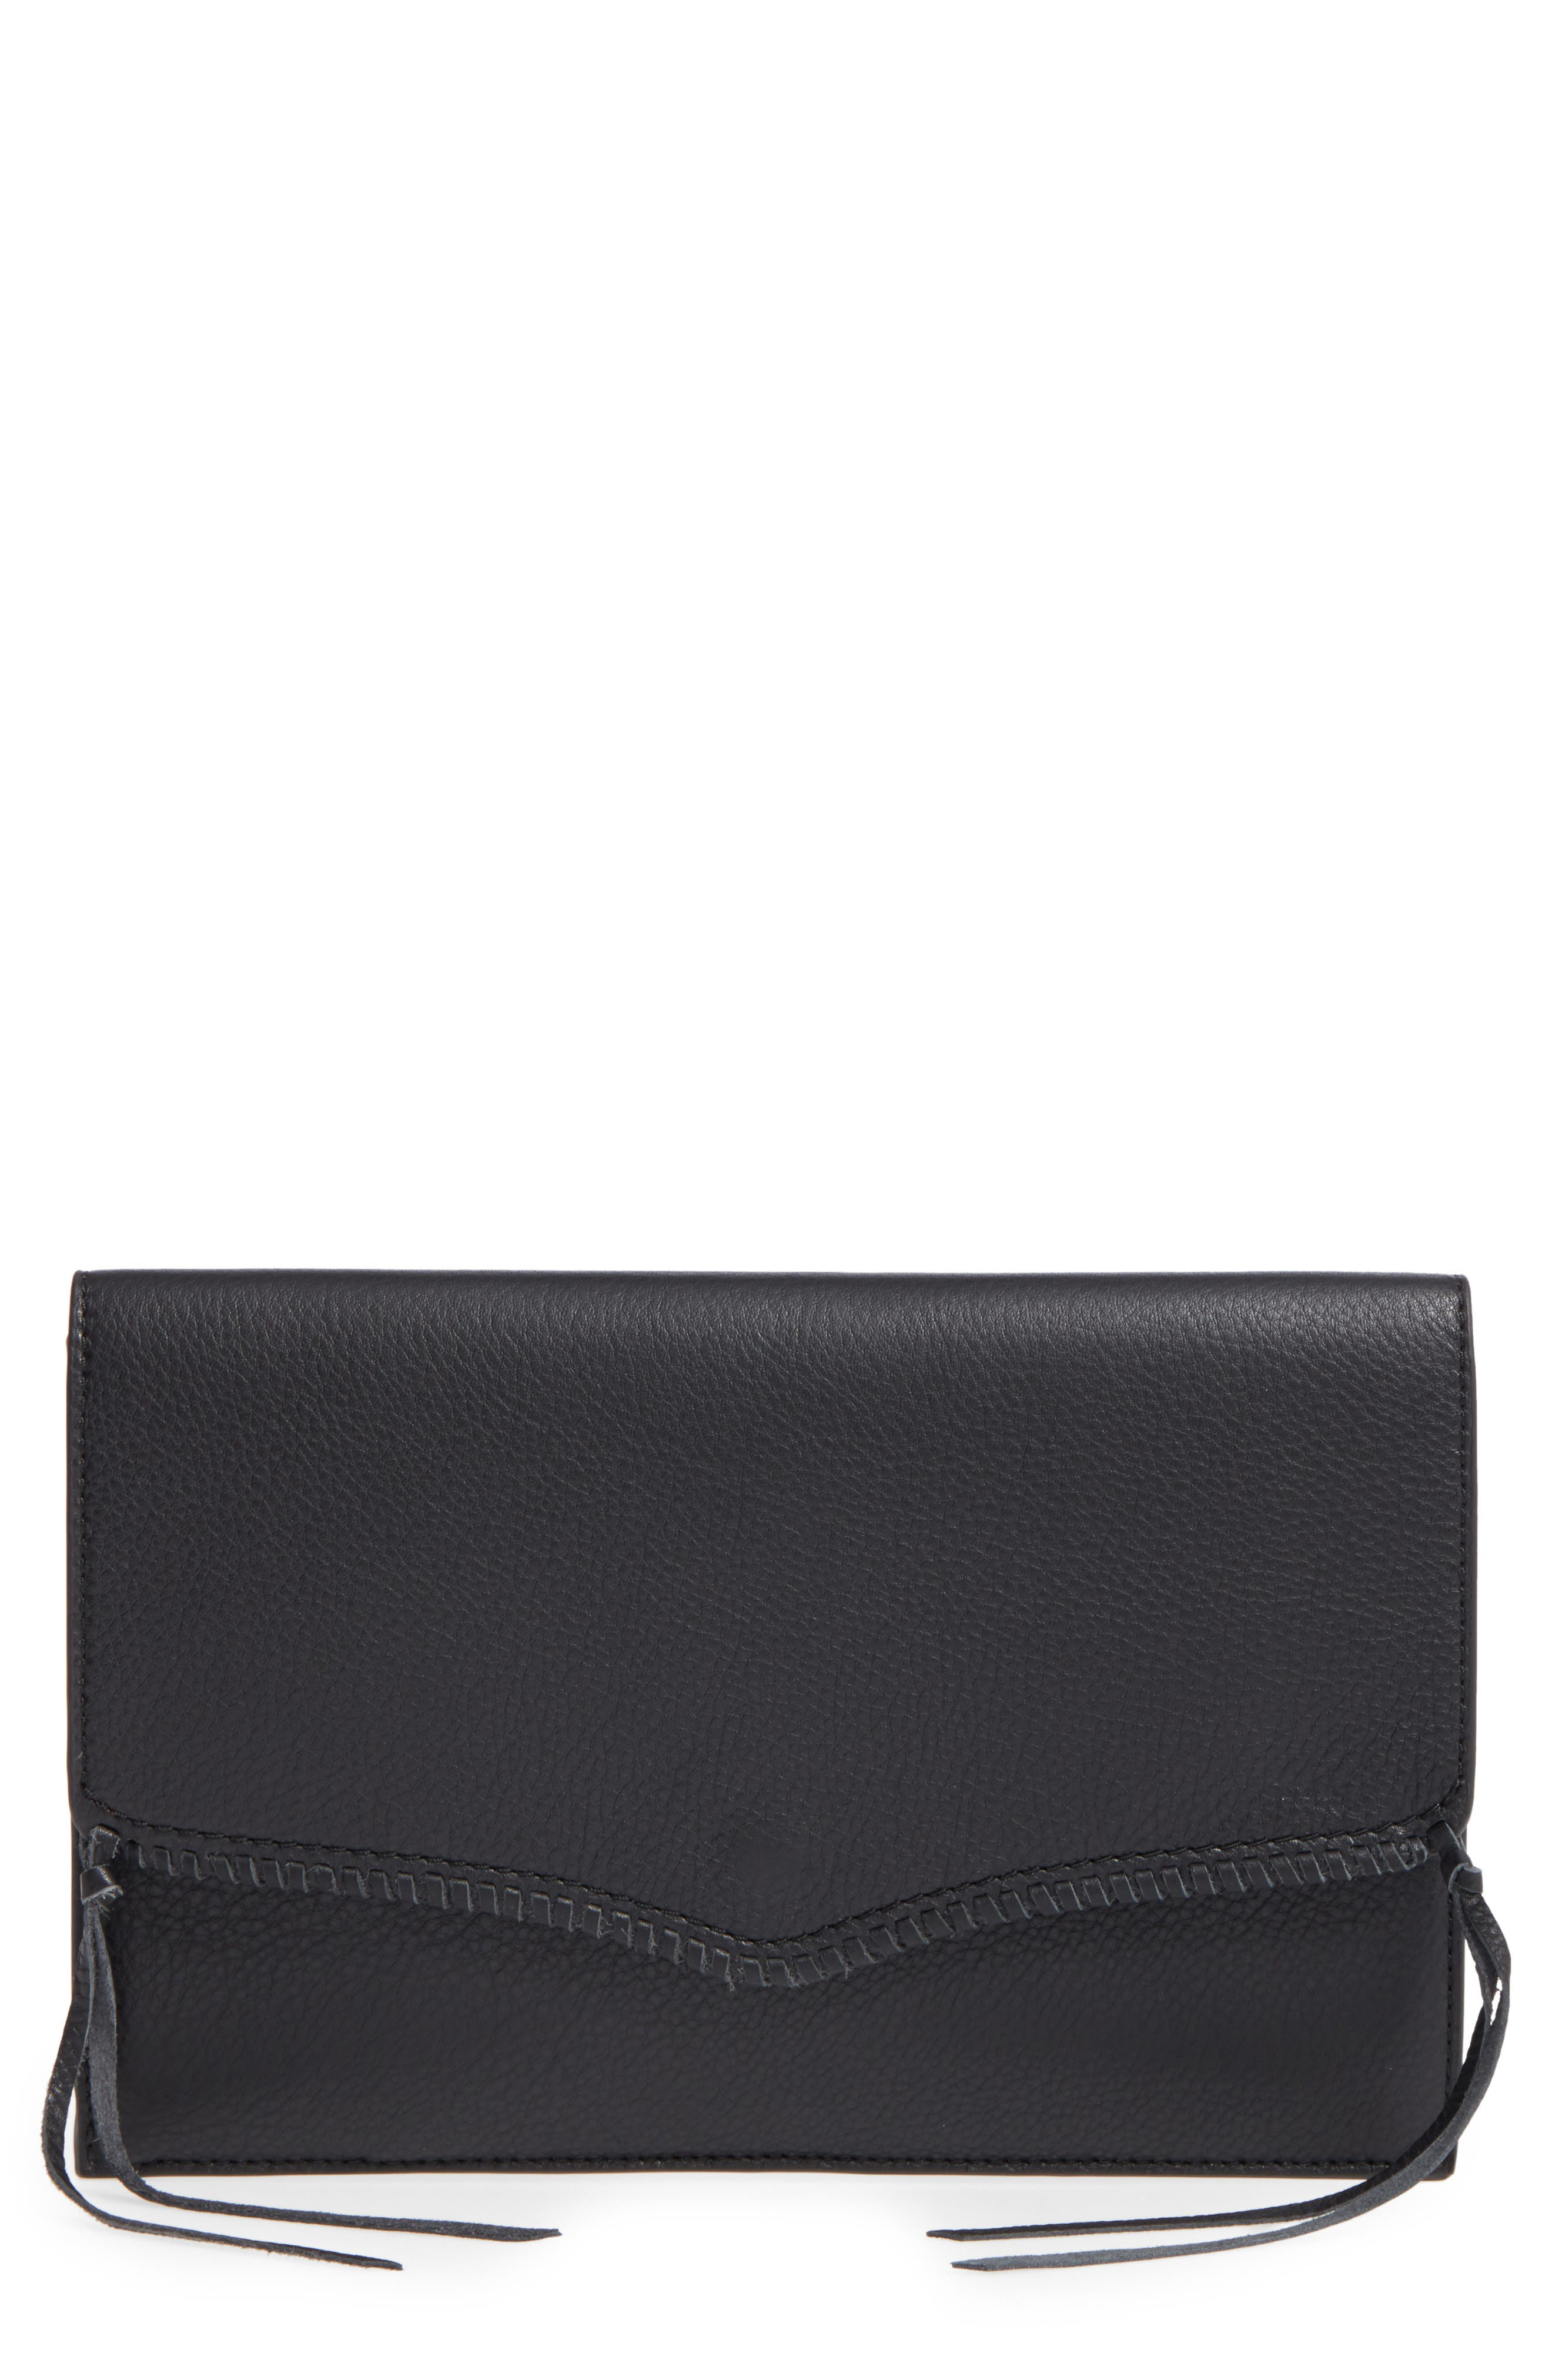 REBECCA MINKOFF Panama Leather Envelope Clutch